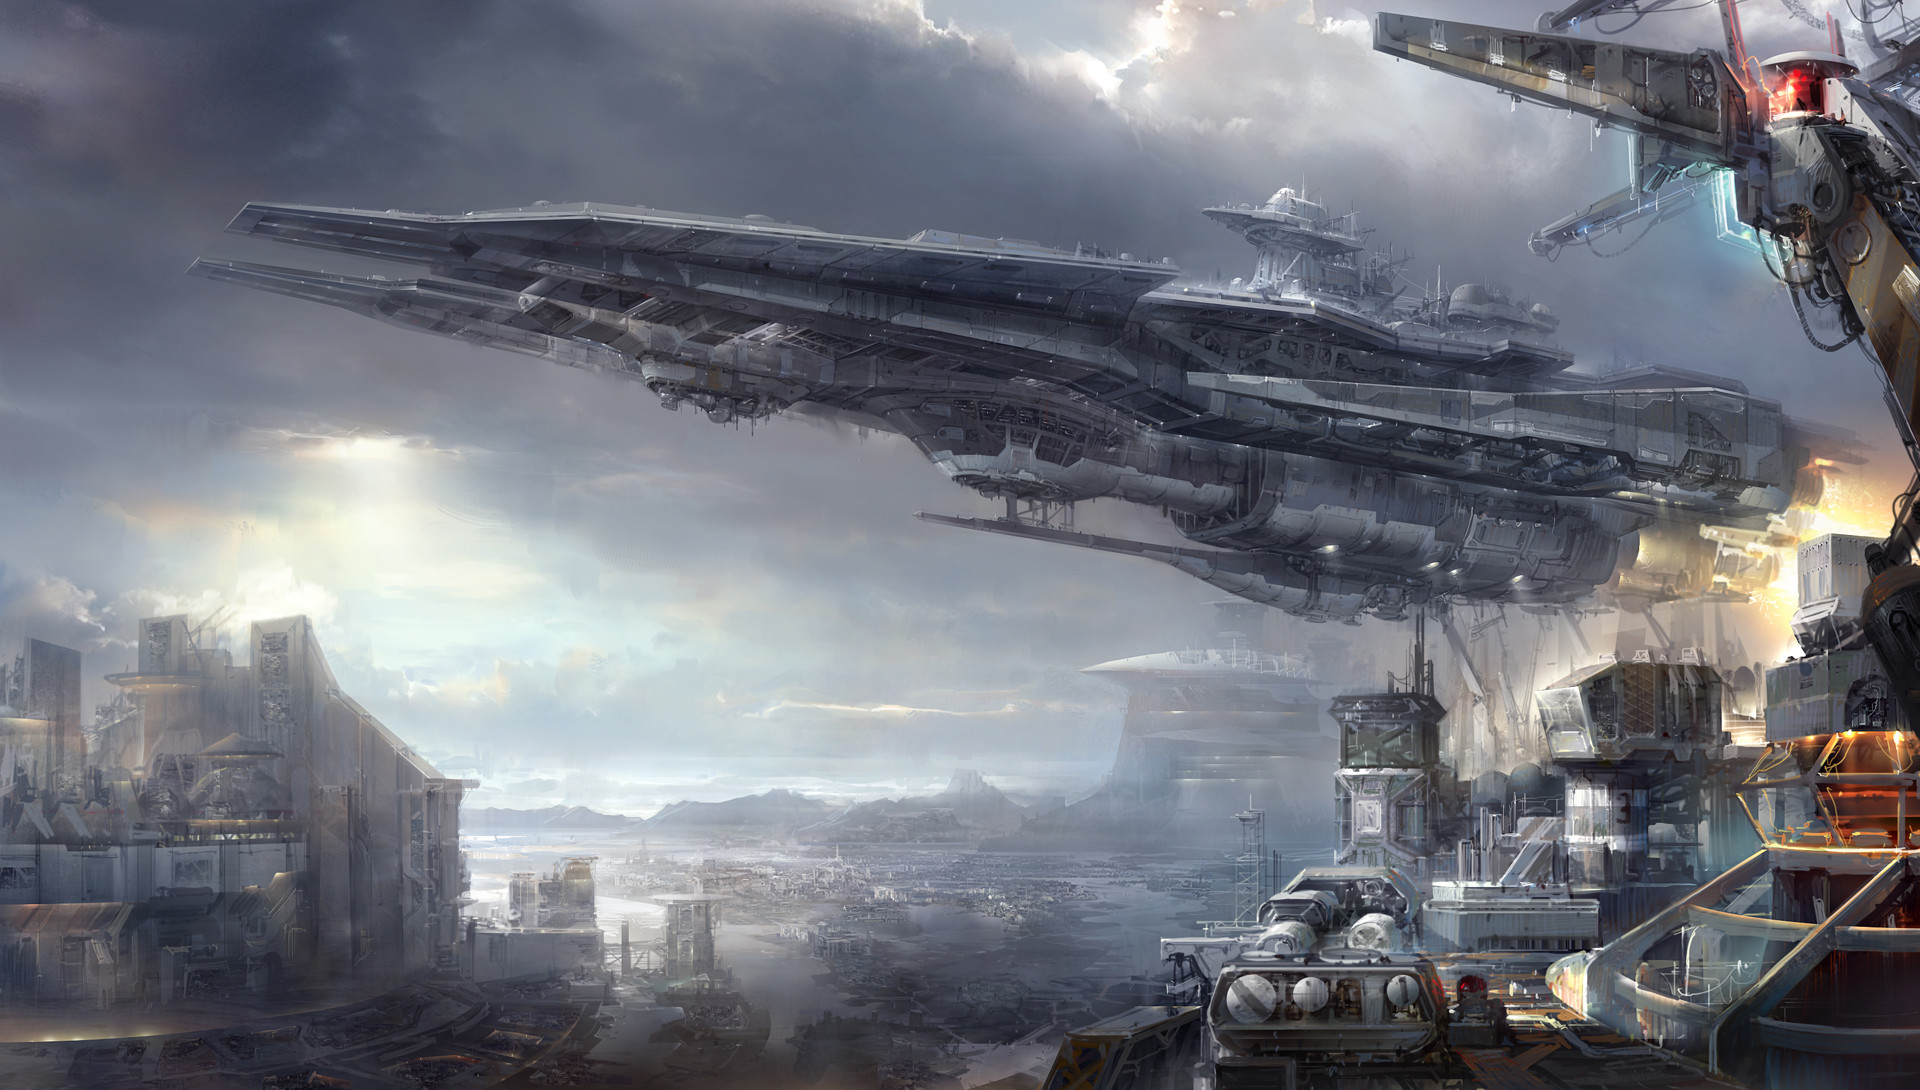 The Glorious Sci-Fi Art of Jae Cheol Park